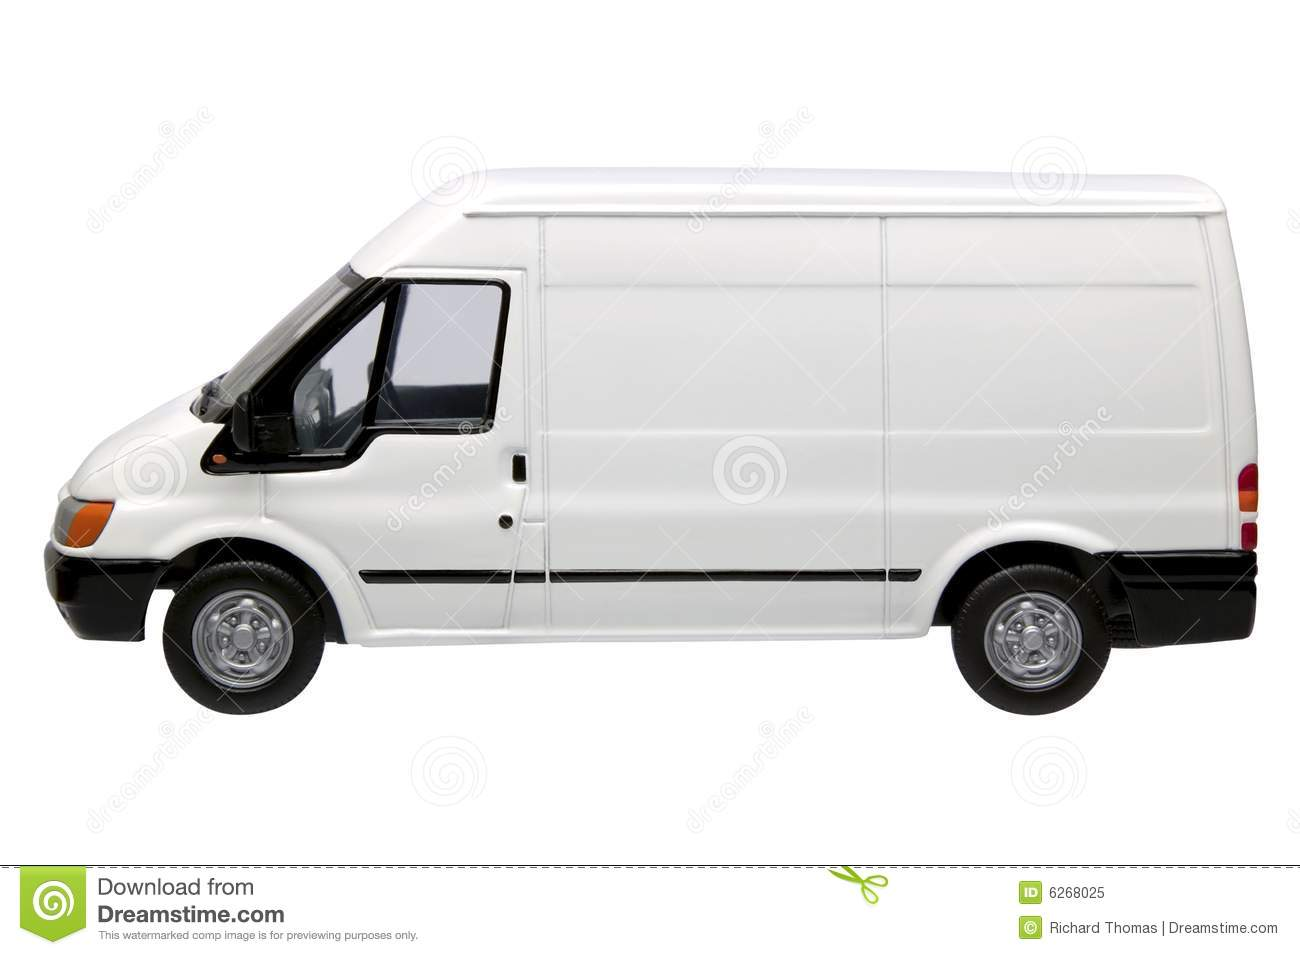 de4ebbf00f White van side stock image. Image of mail